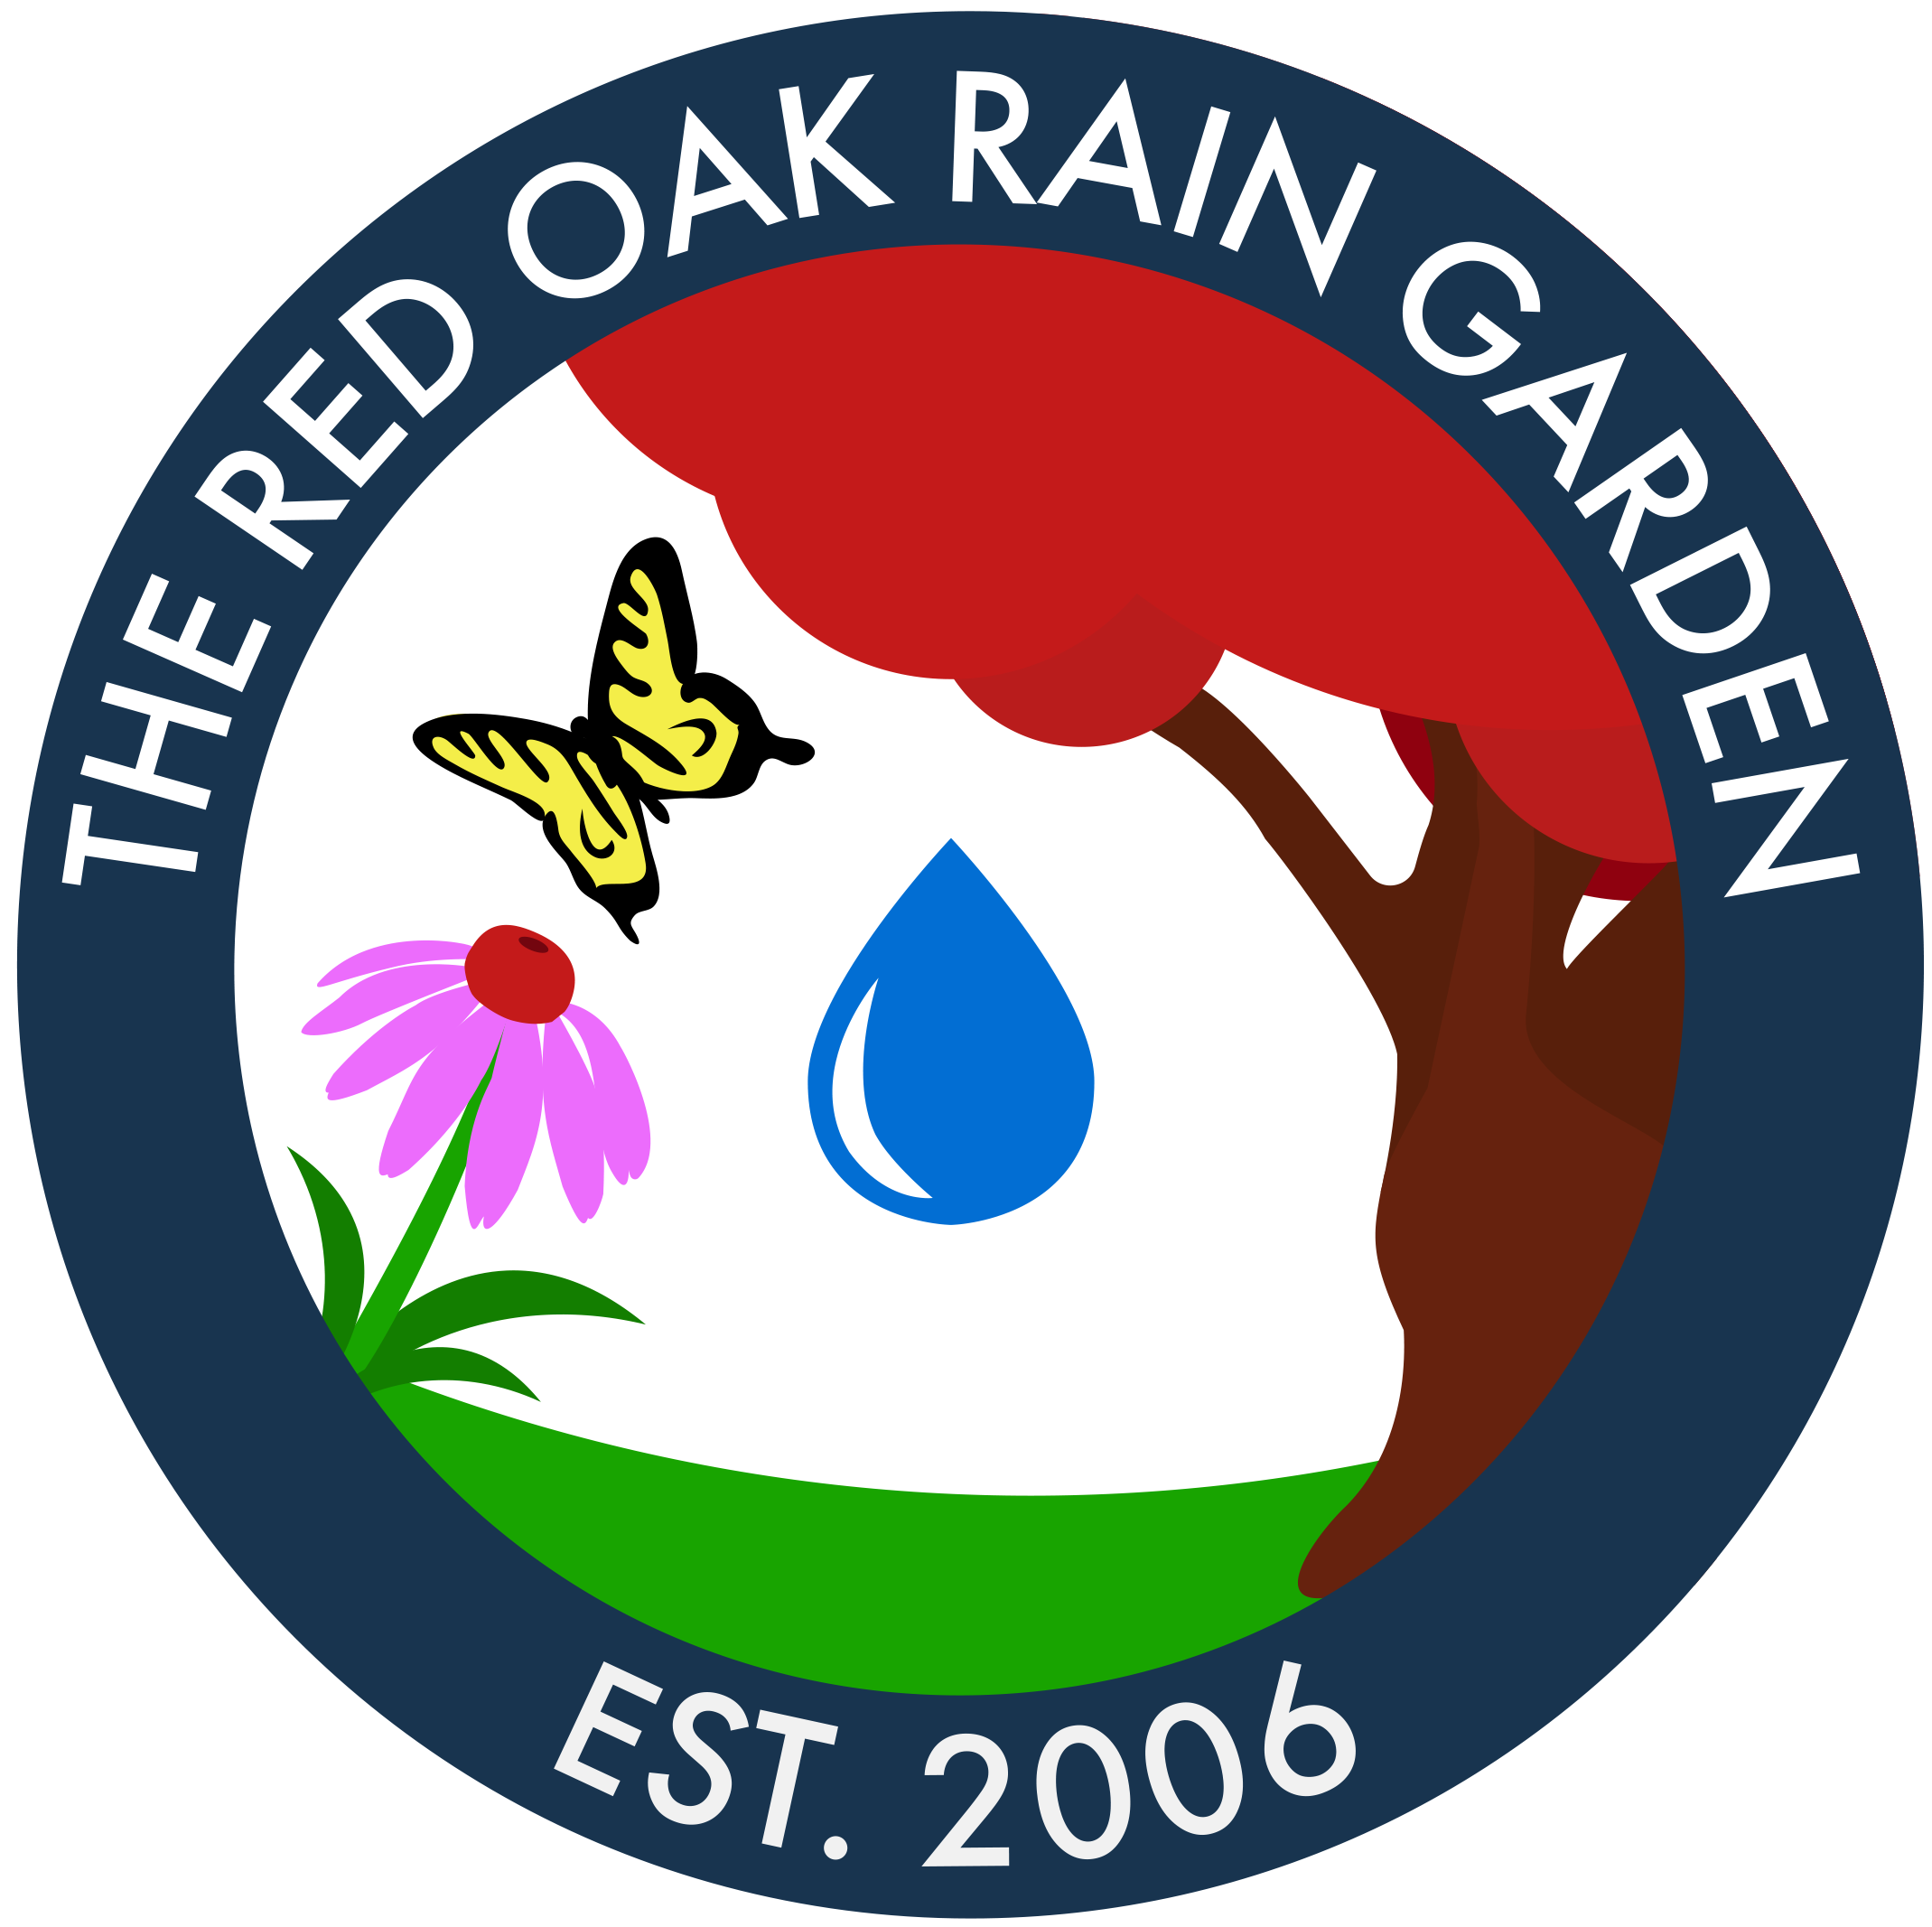 The Red Oak Rain Garden